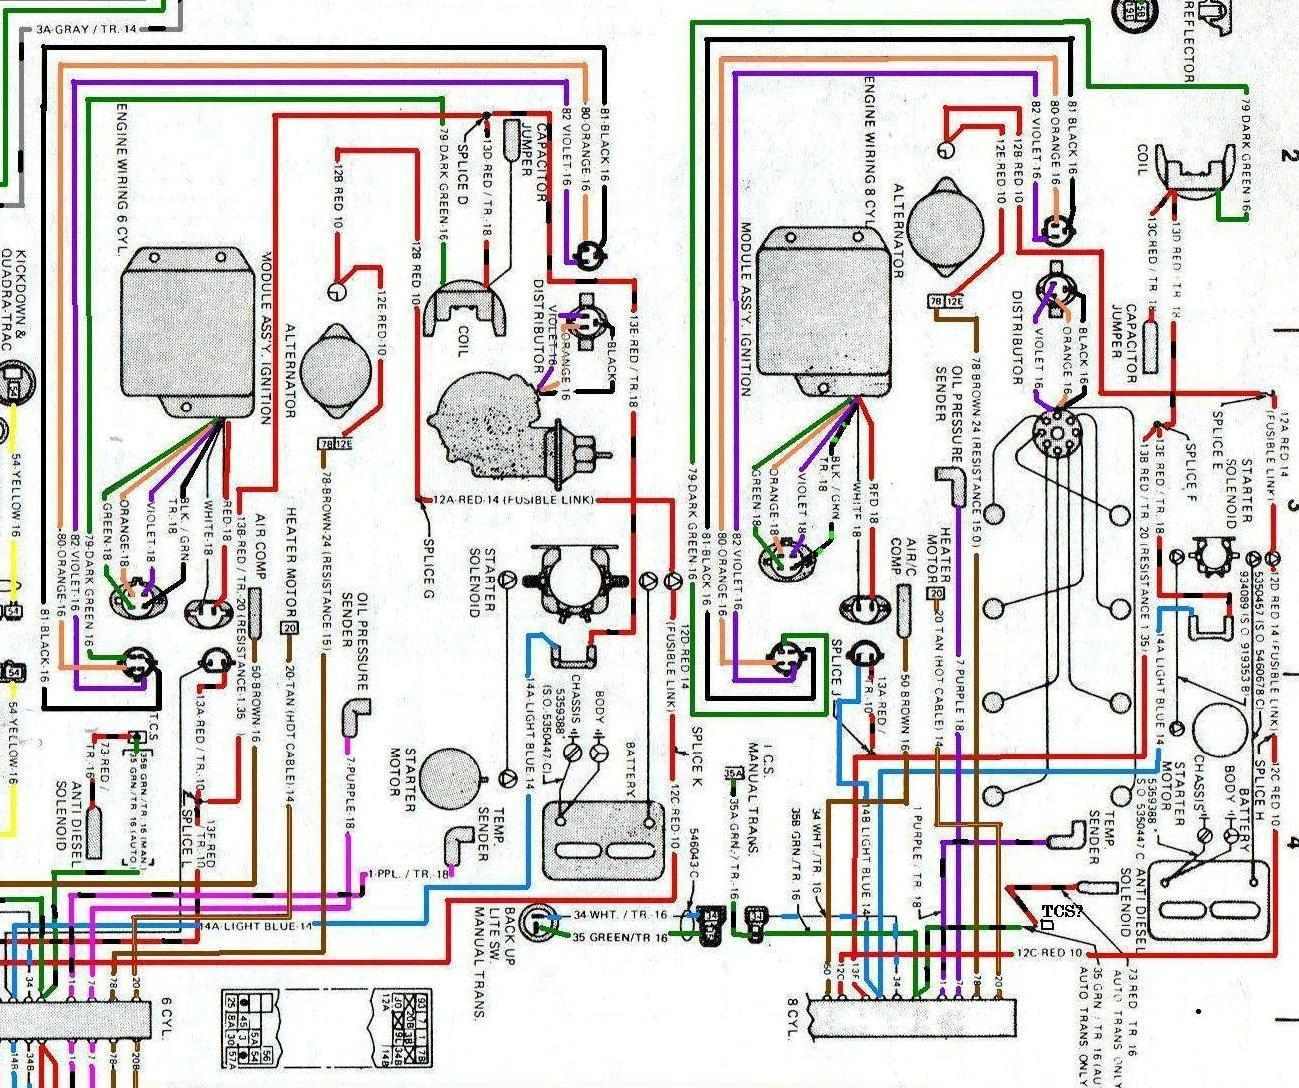 hight resolution of 79 jeep cj7 wiring diagram detailed schematics diagram rh antonartgallery com 1985 jeep cj7 ignition wiring